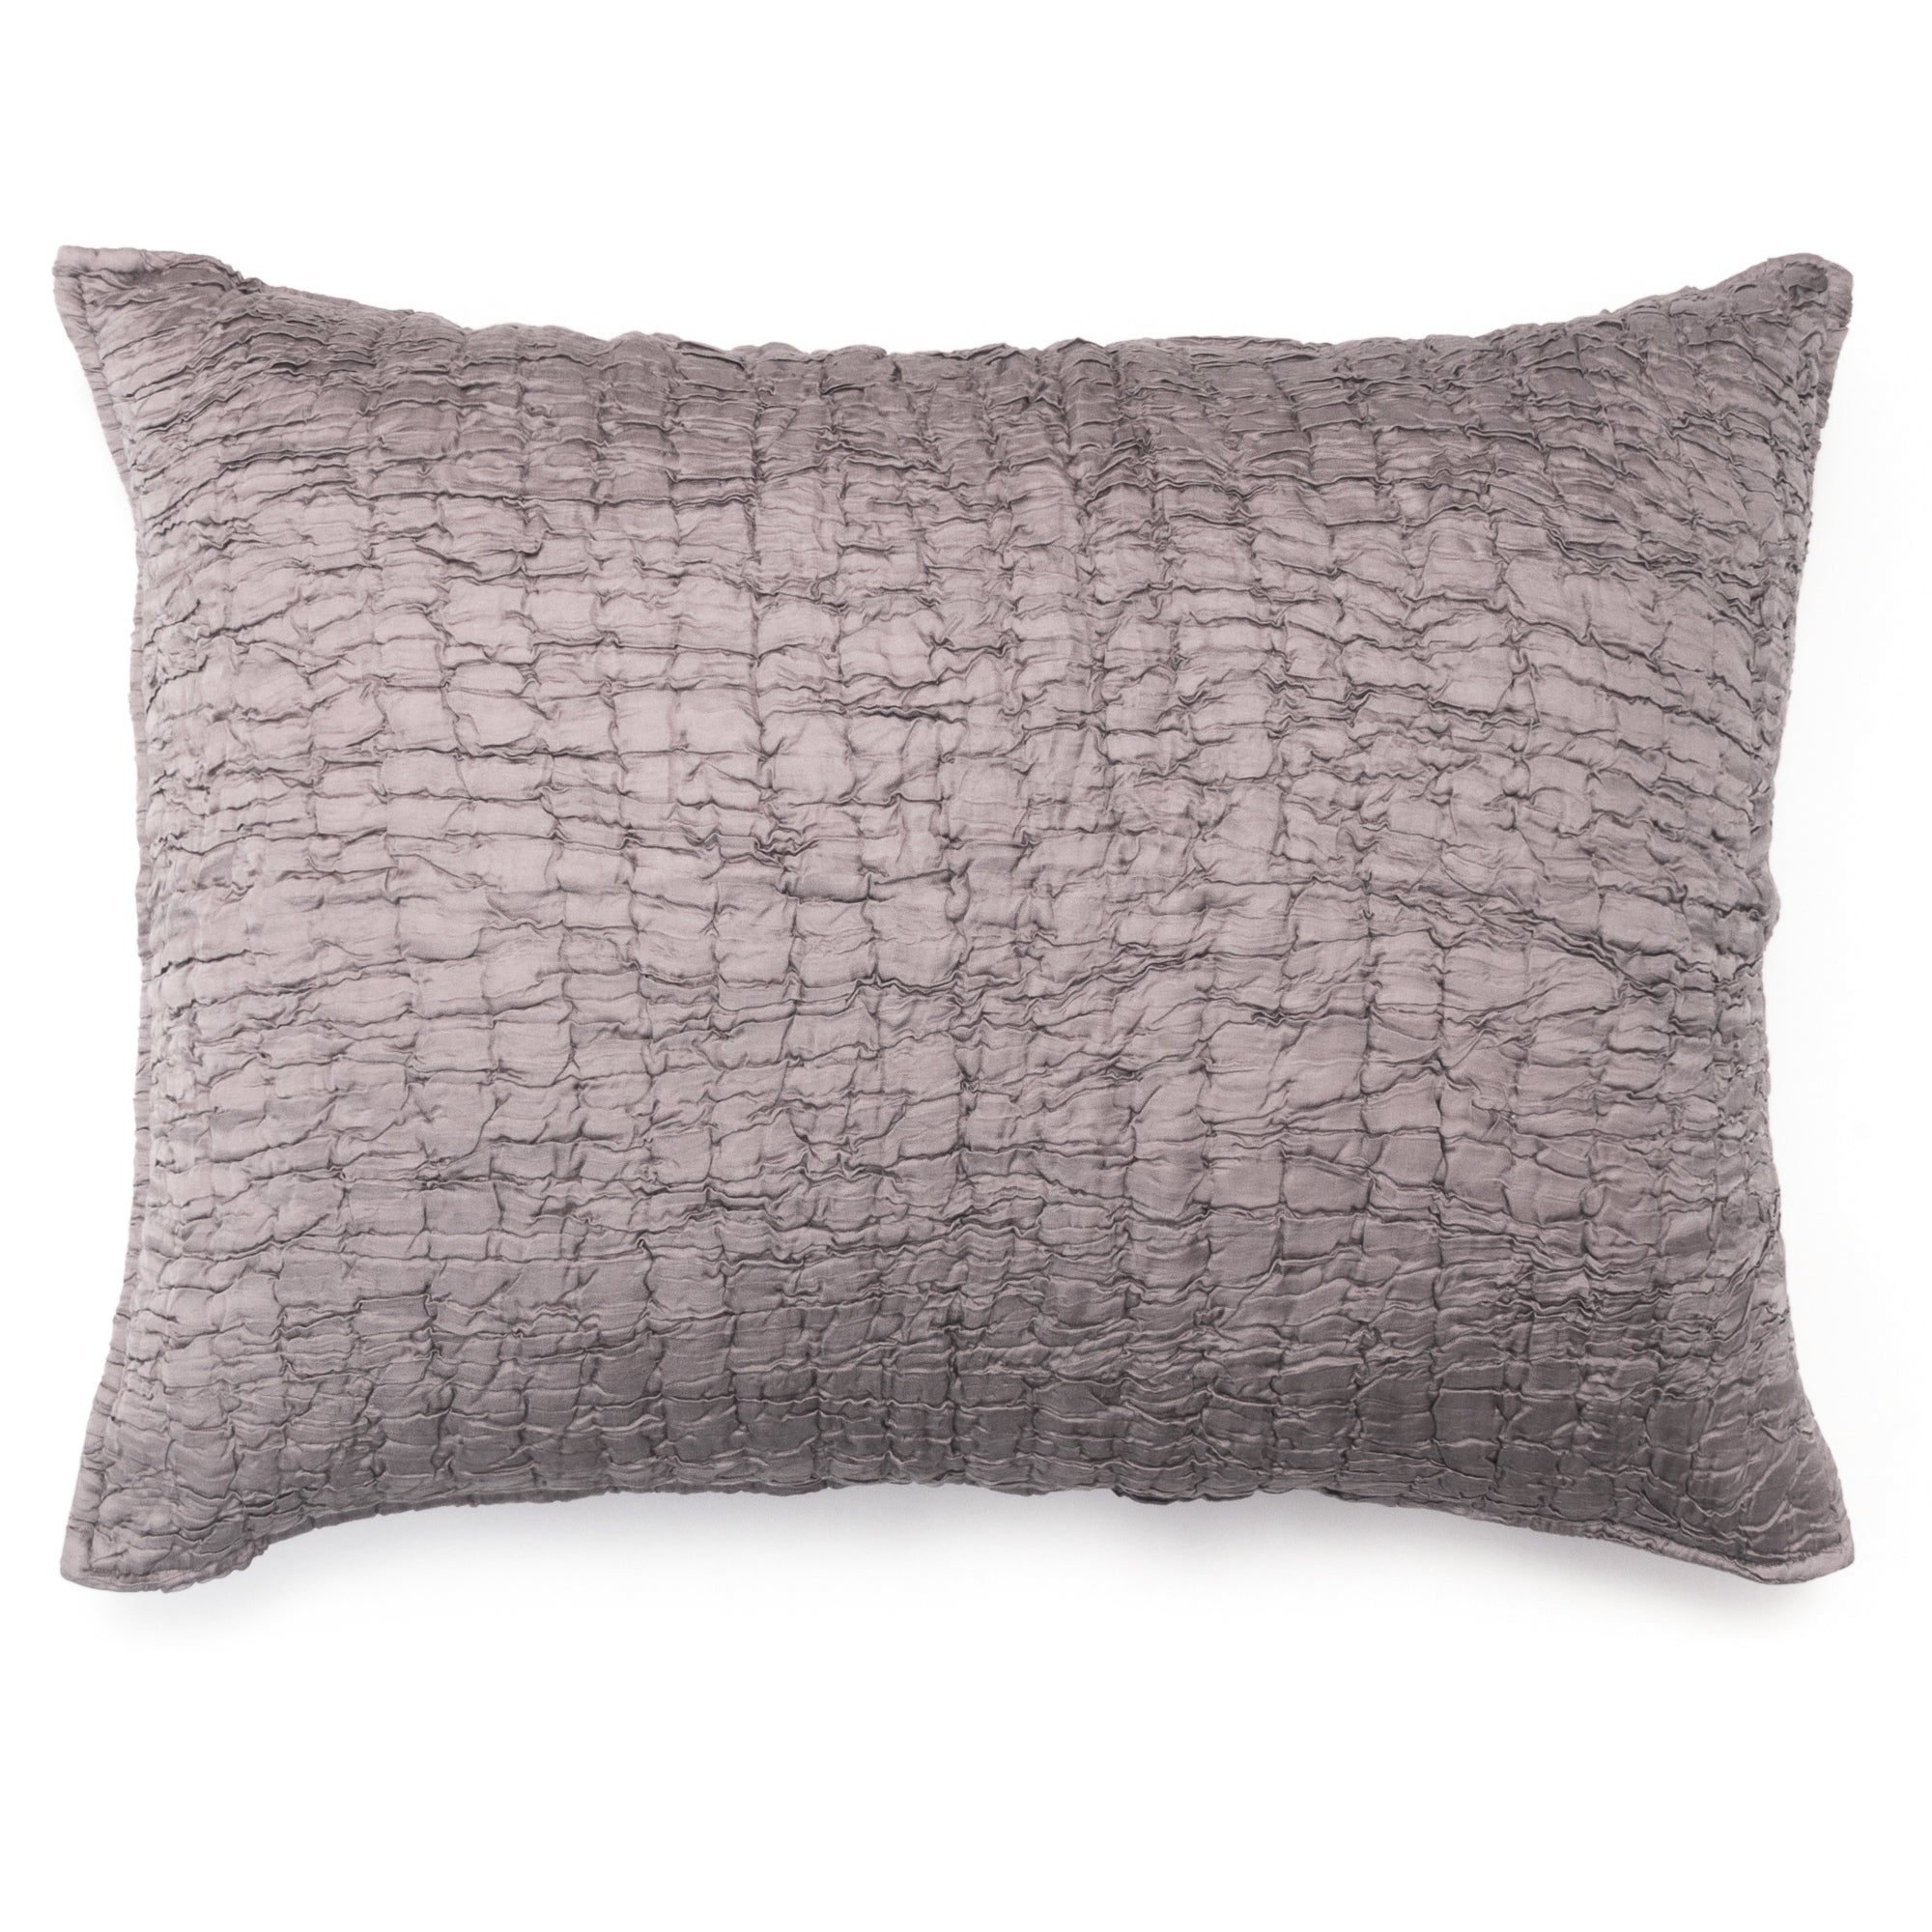 The Pillow Collection Jessamine Bedding Sham Coral White King//20 x 36